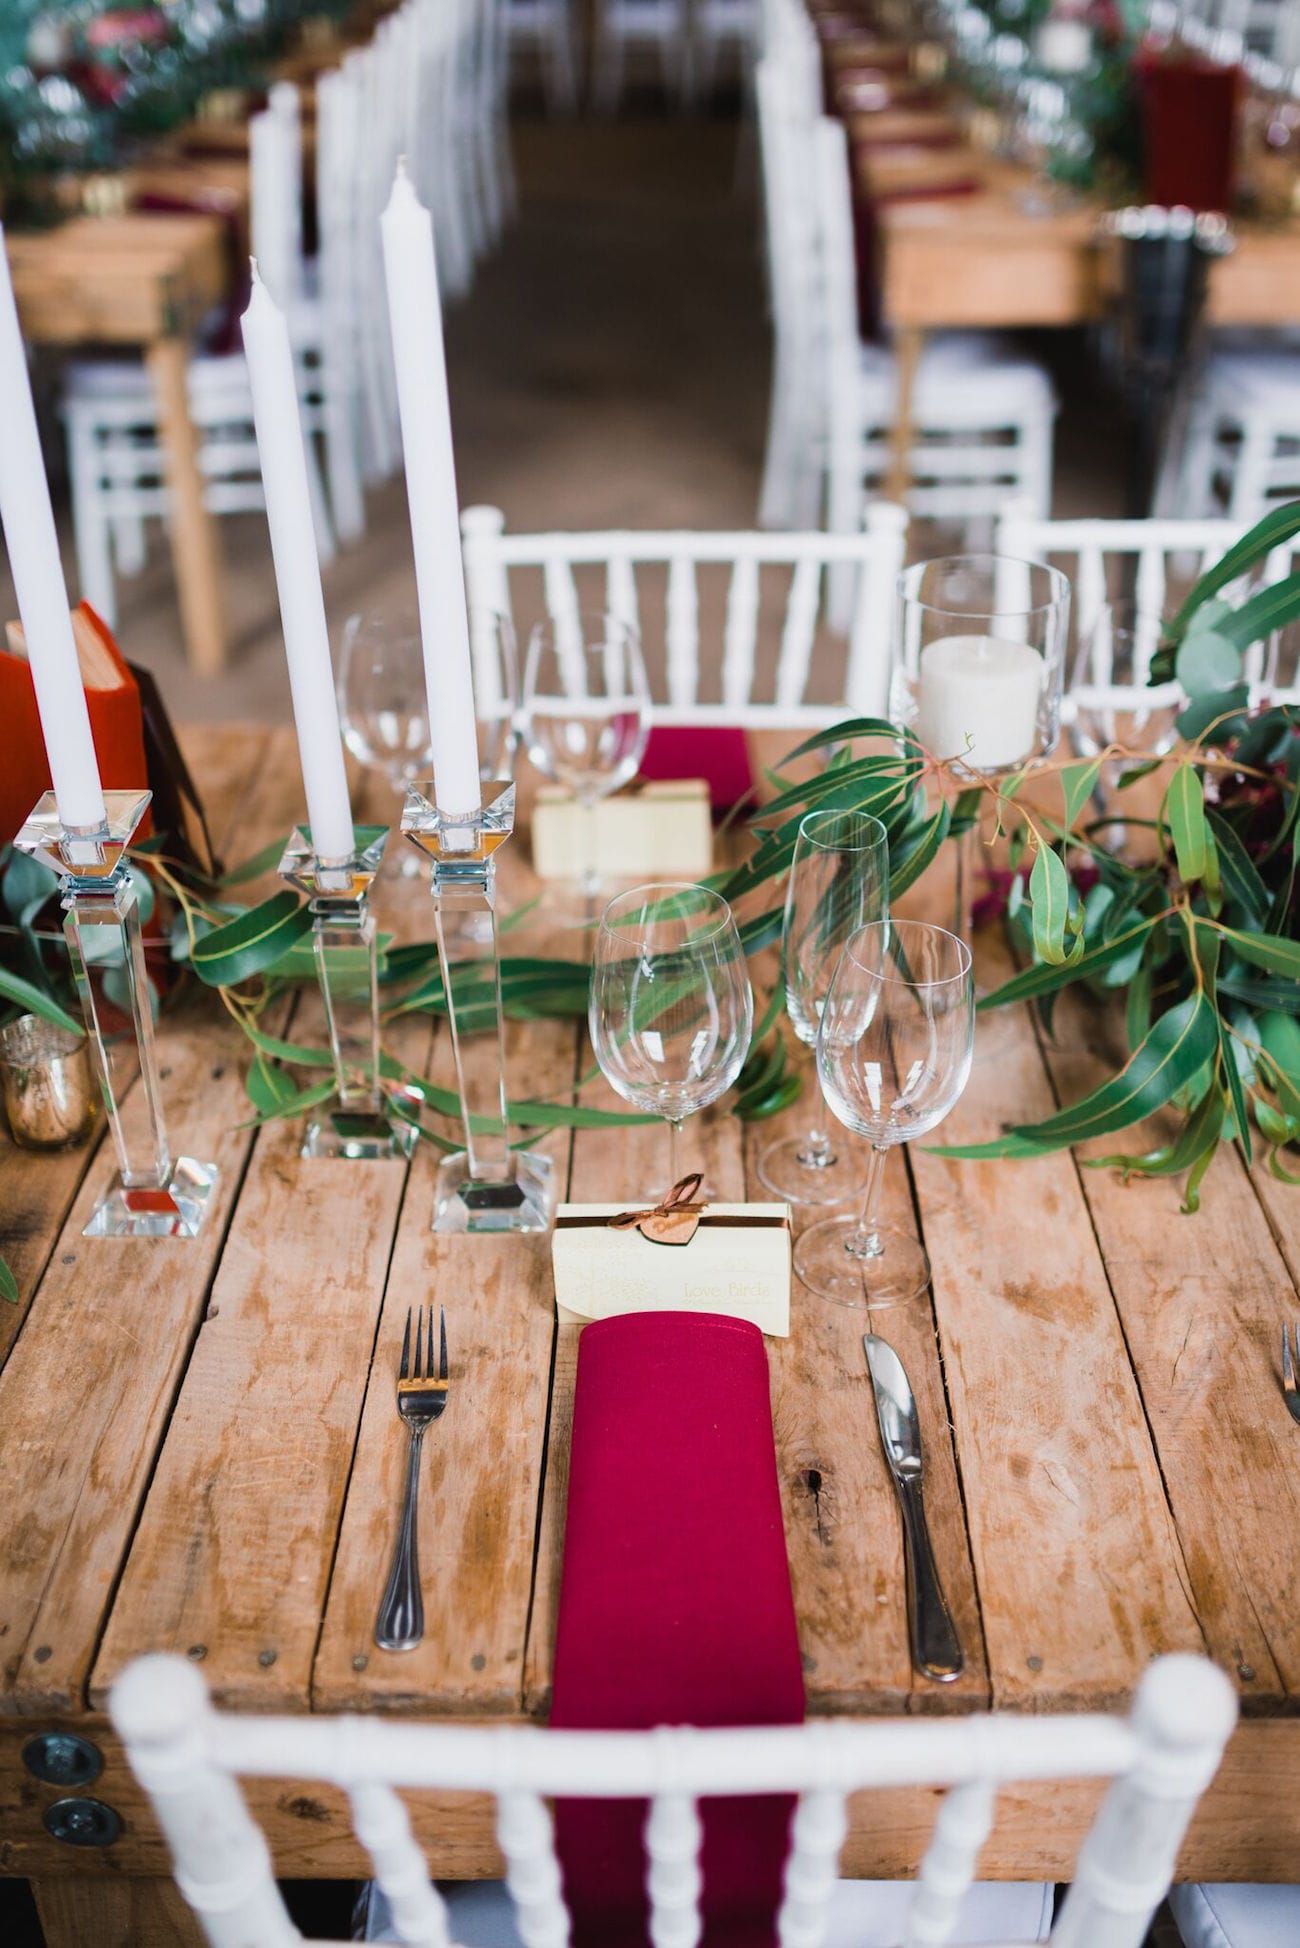 Rustic wood table place setting | Credit: Matthew Carr